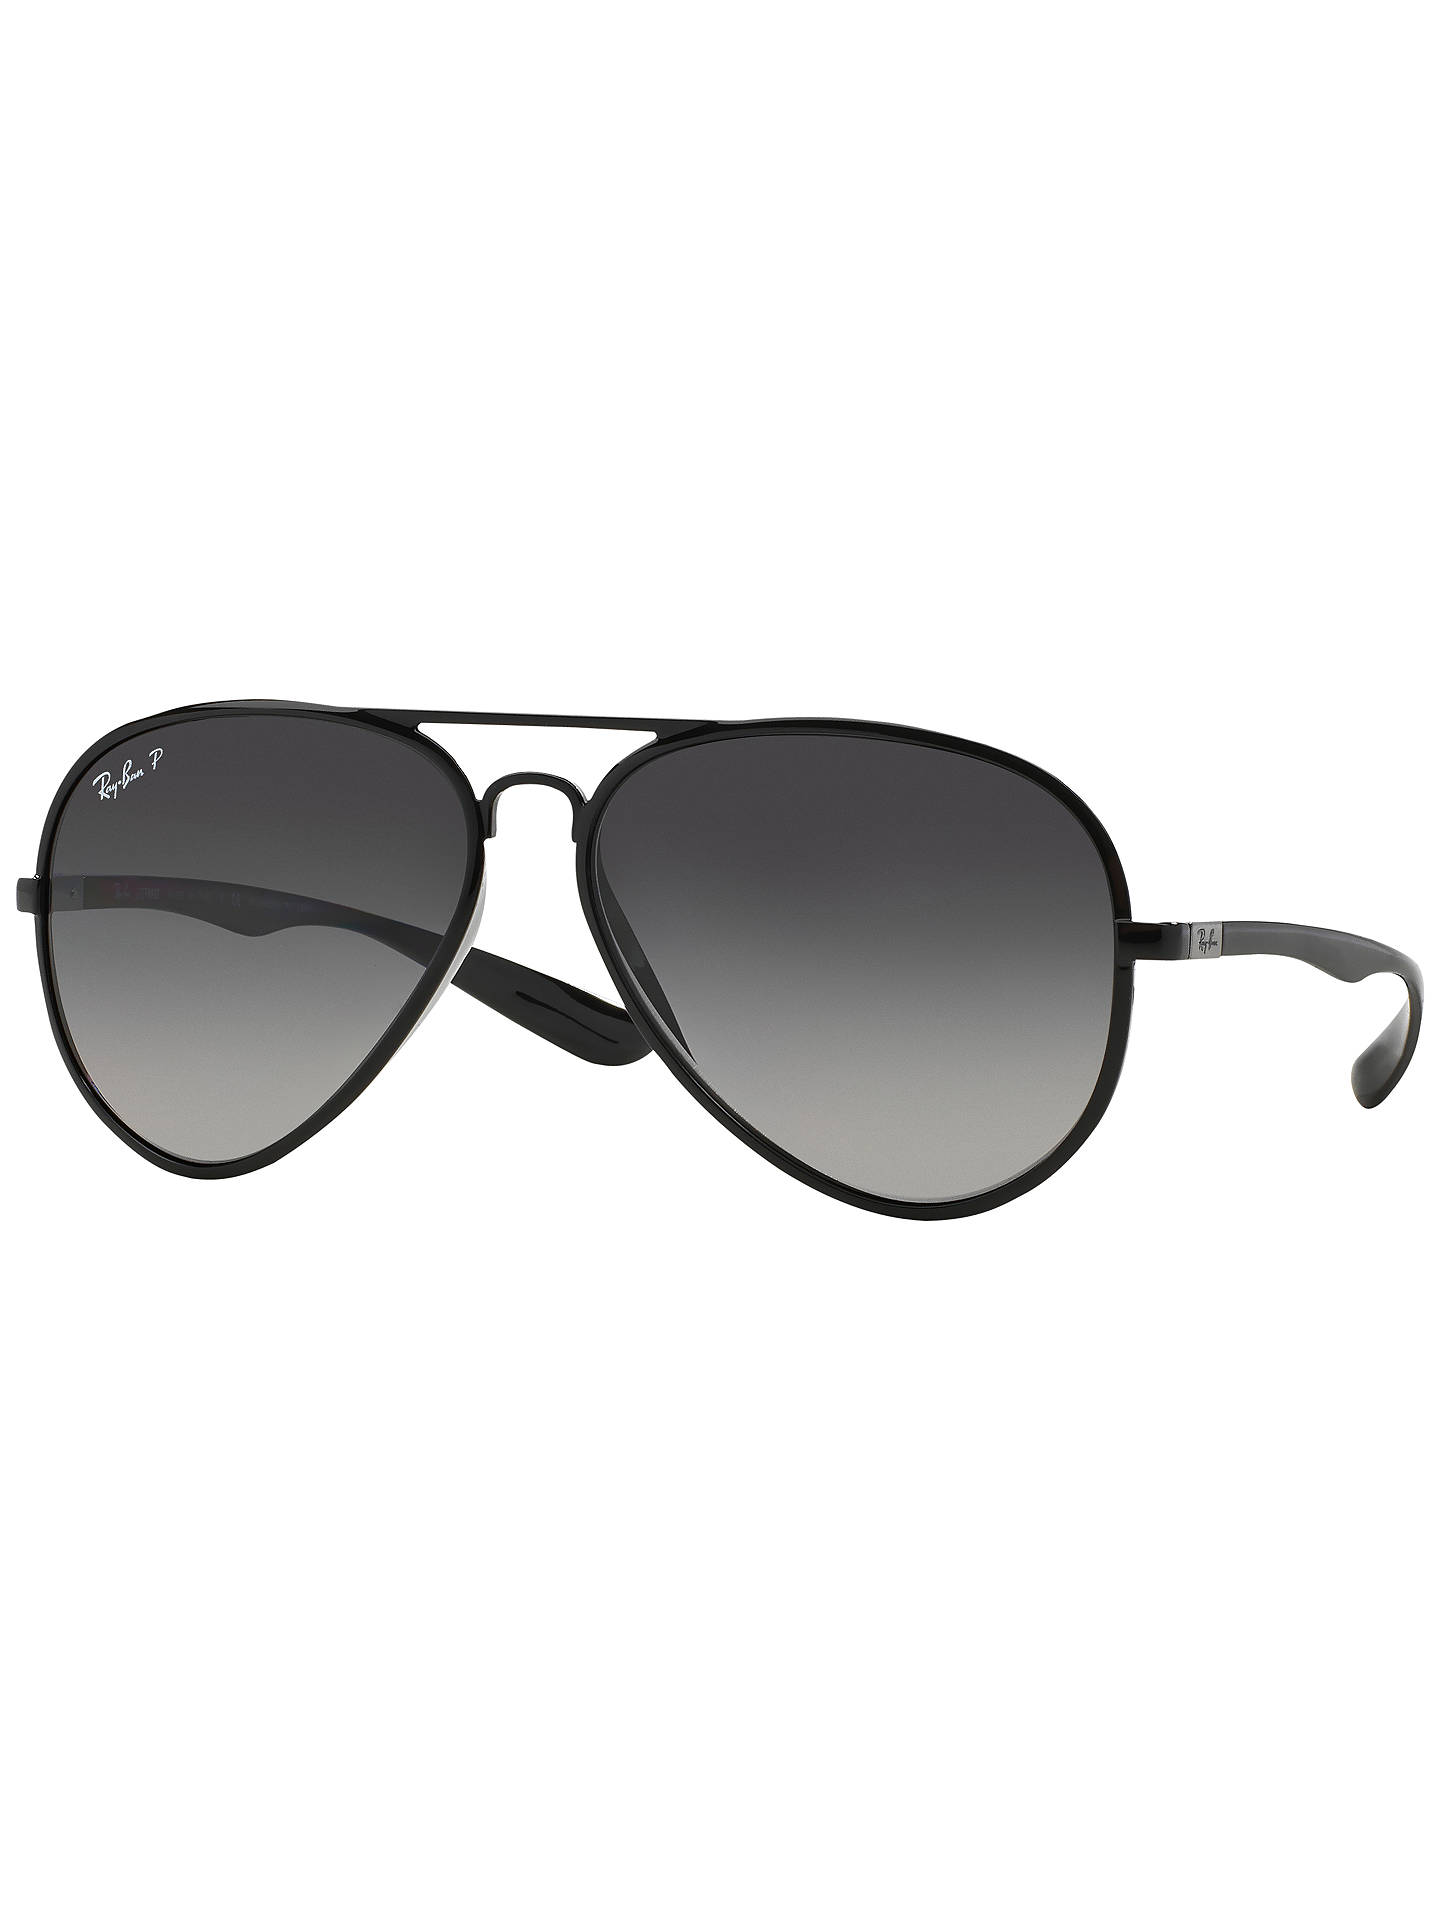 56e9a742ae5 ... BuyRay-Ban RB4180 59 Aviator Liteforce Sunglasses